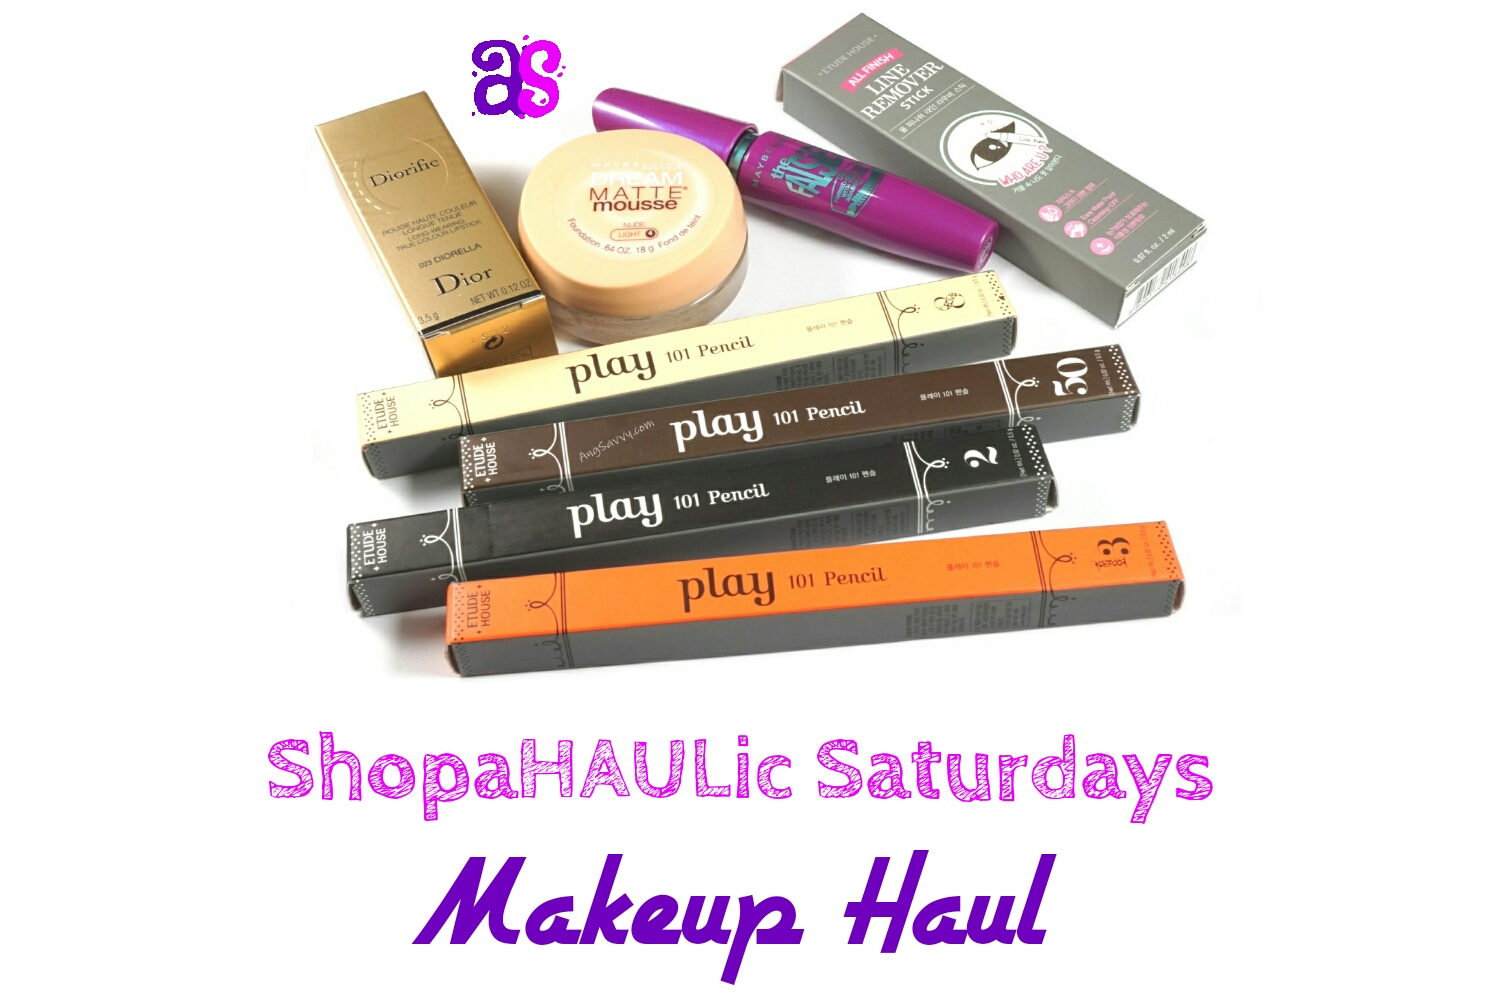 Makeup Haul: Dior, Maybelline, Etude House